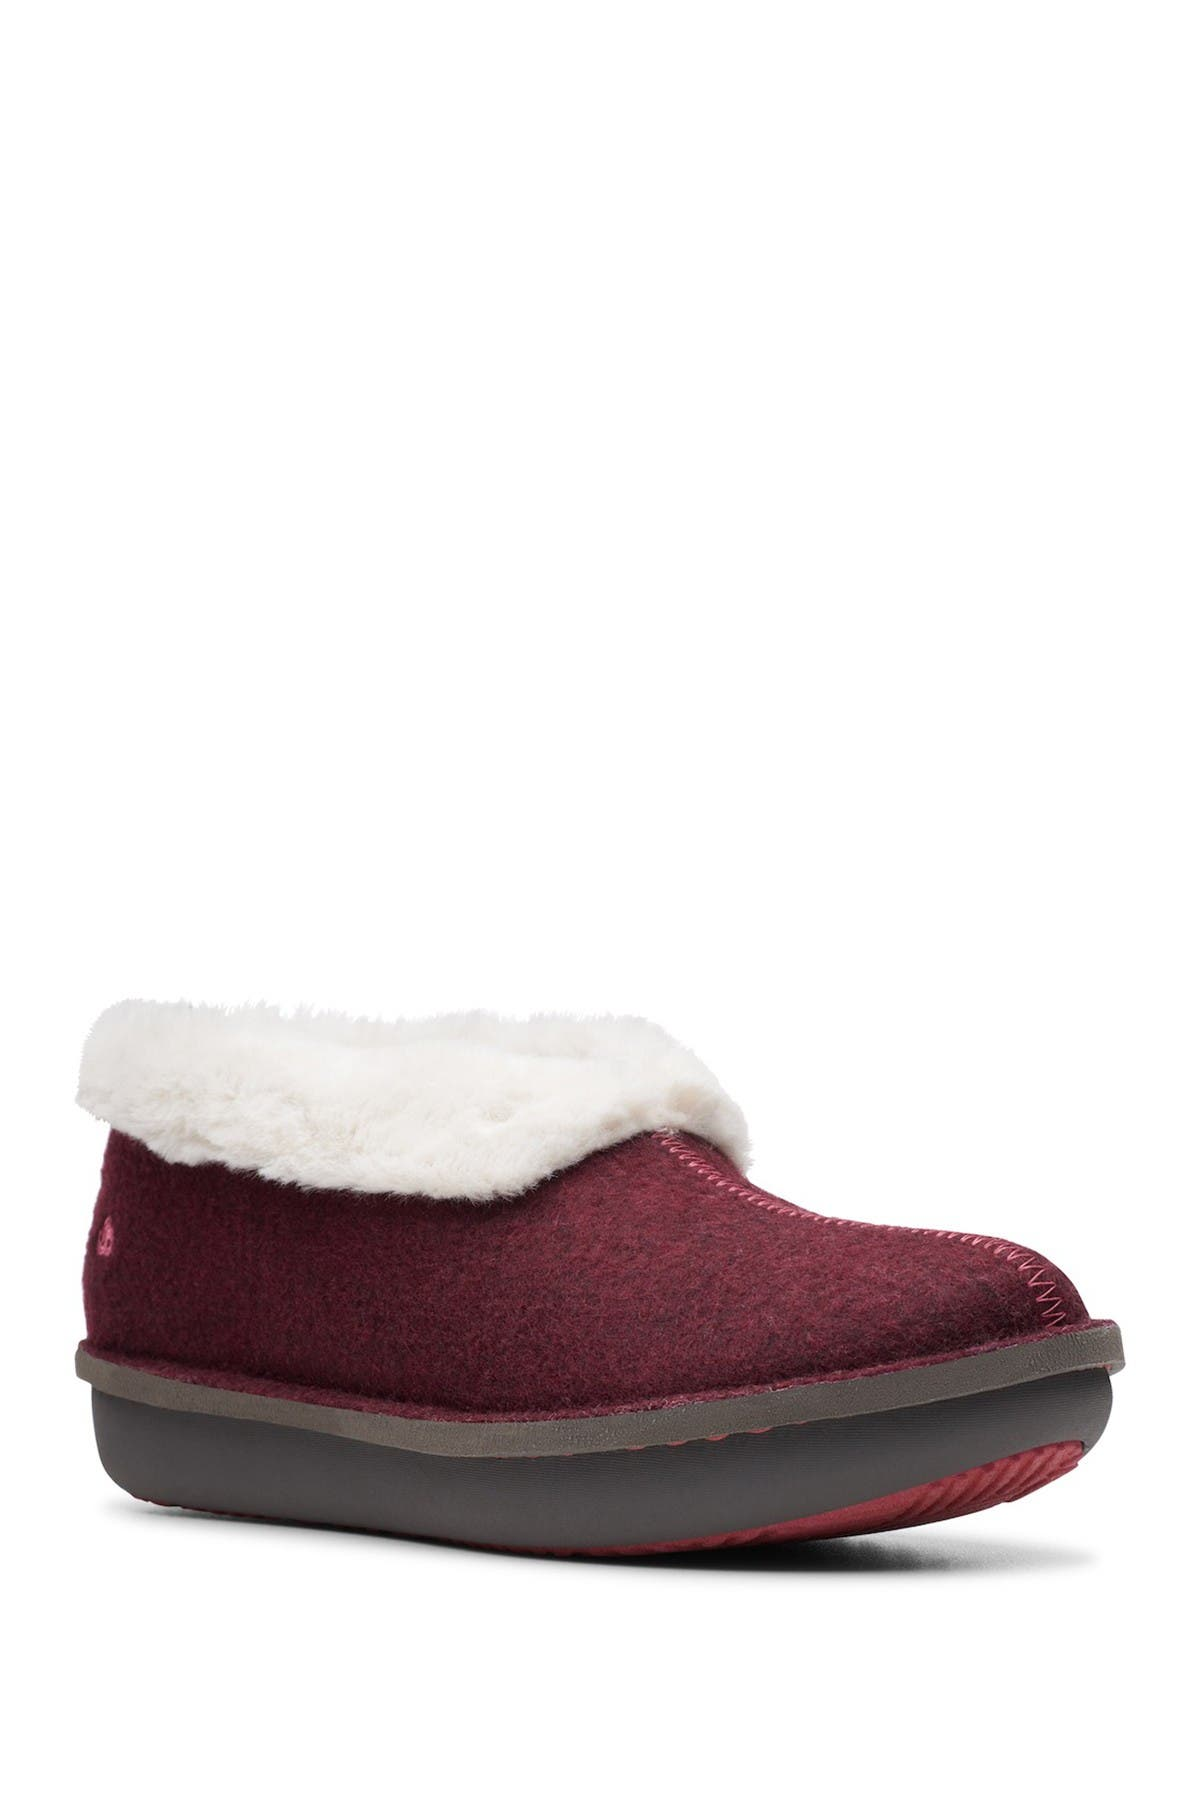 Image of Clarks Step Flow Low Faux Fur Lined Slipper